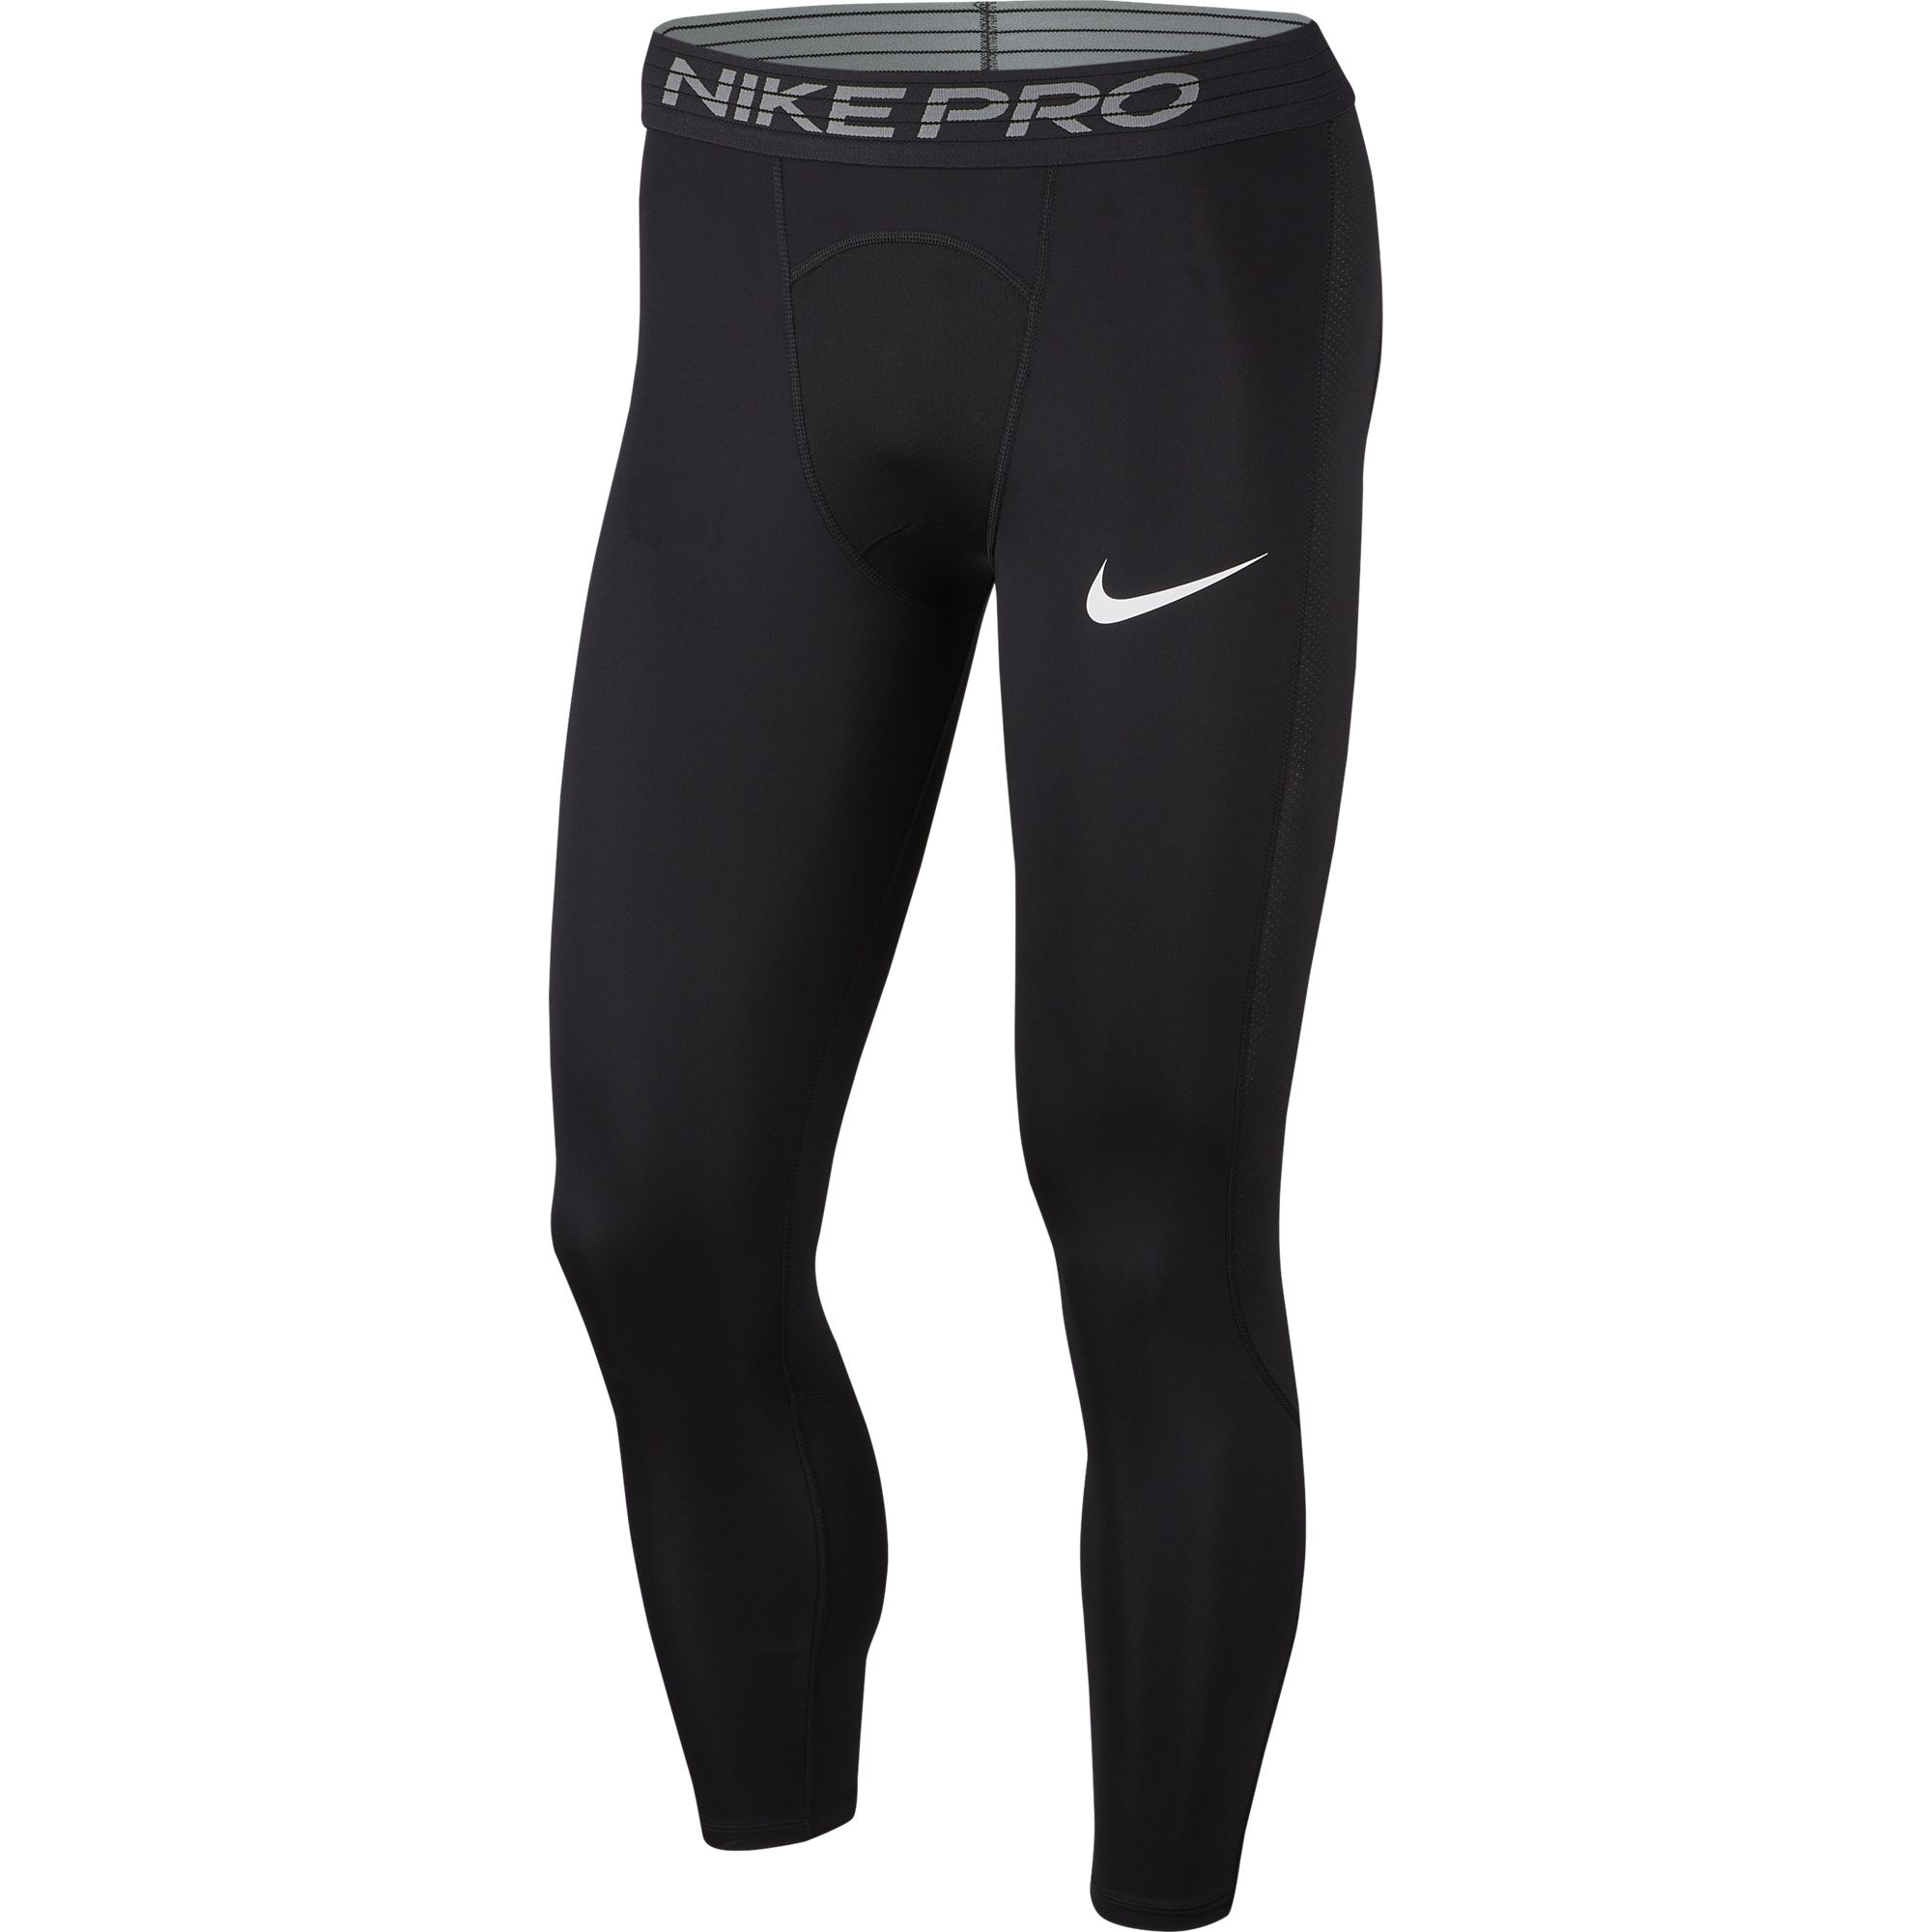 Men's Pro 3/4 Tight, Black, swatch